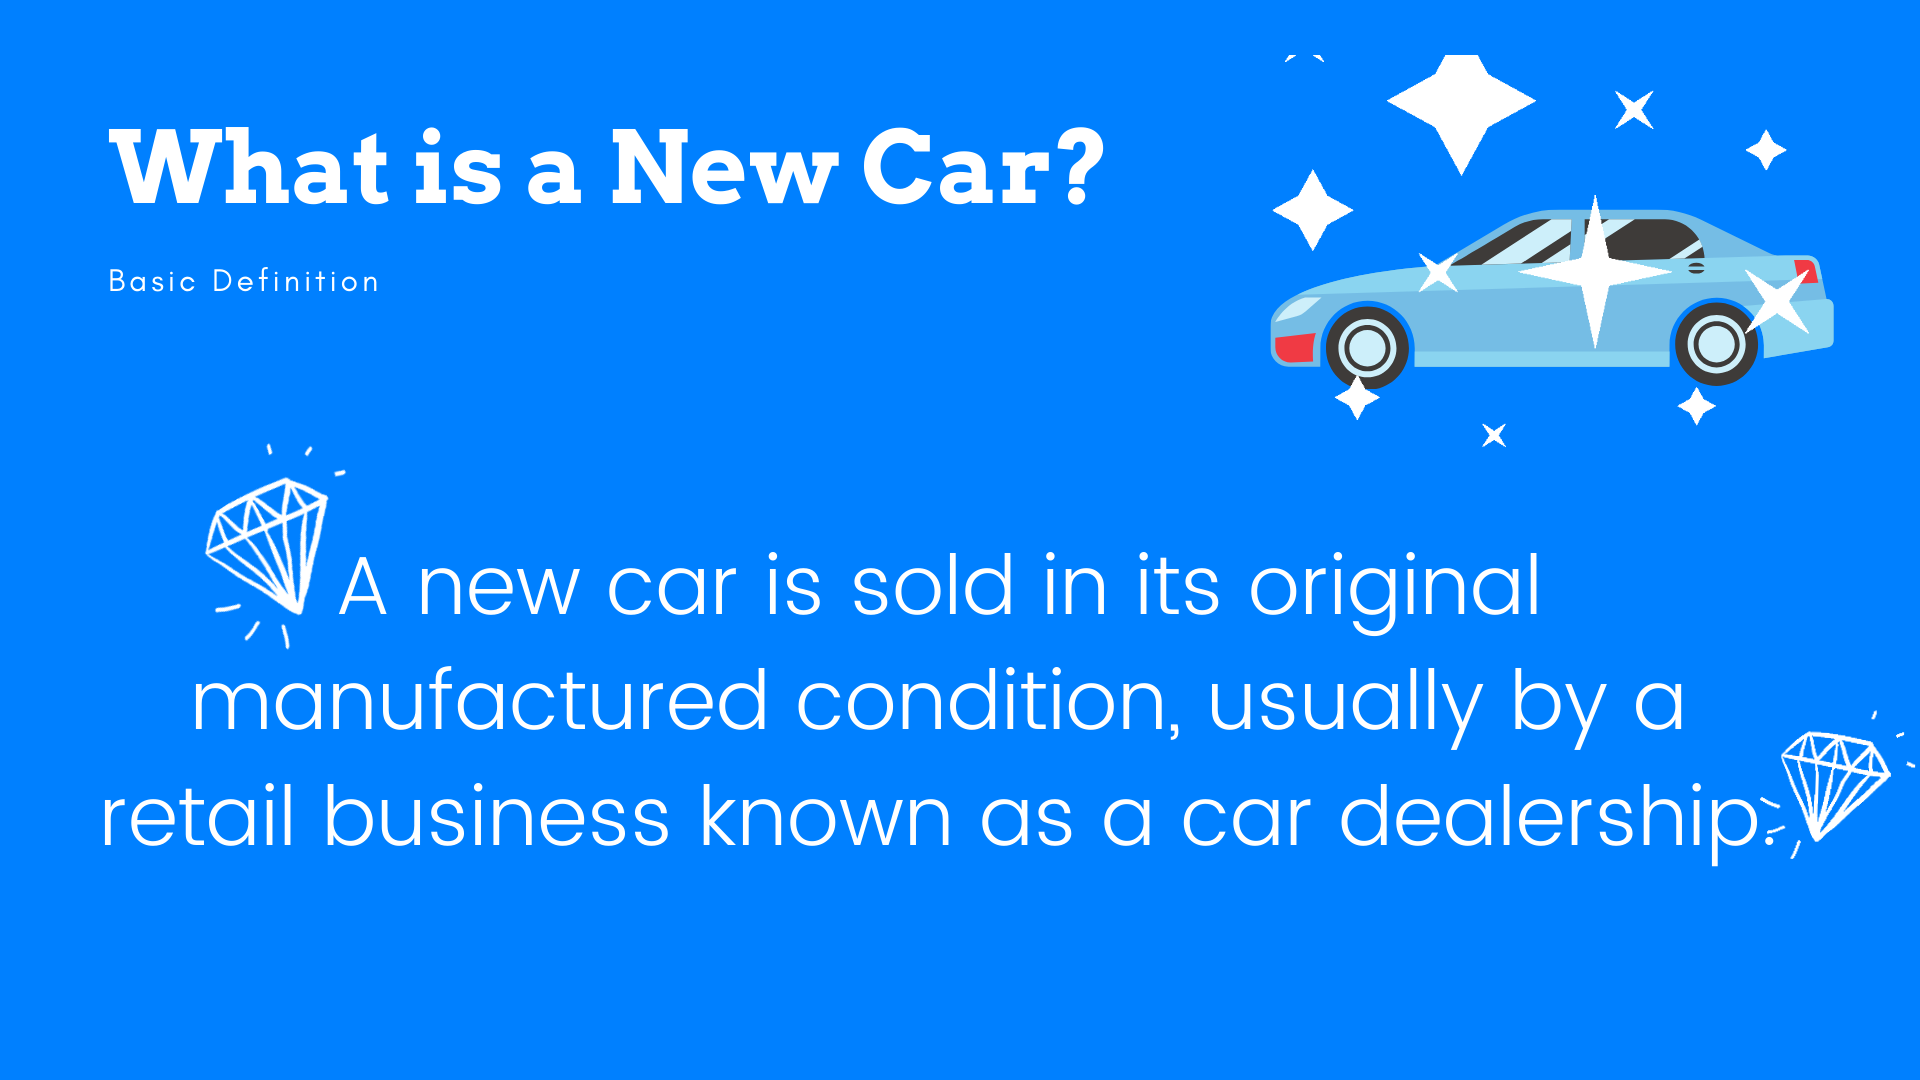 A new car is sold in its original manufactured condition, usually by a retail business known as a car dealership.